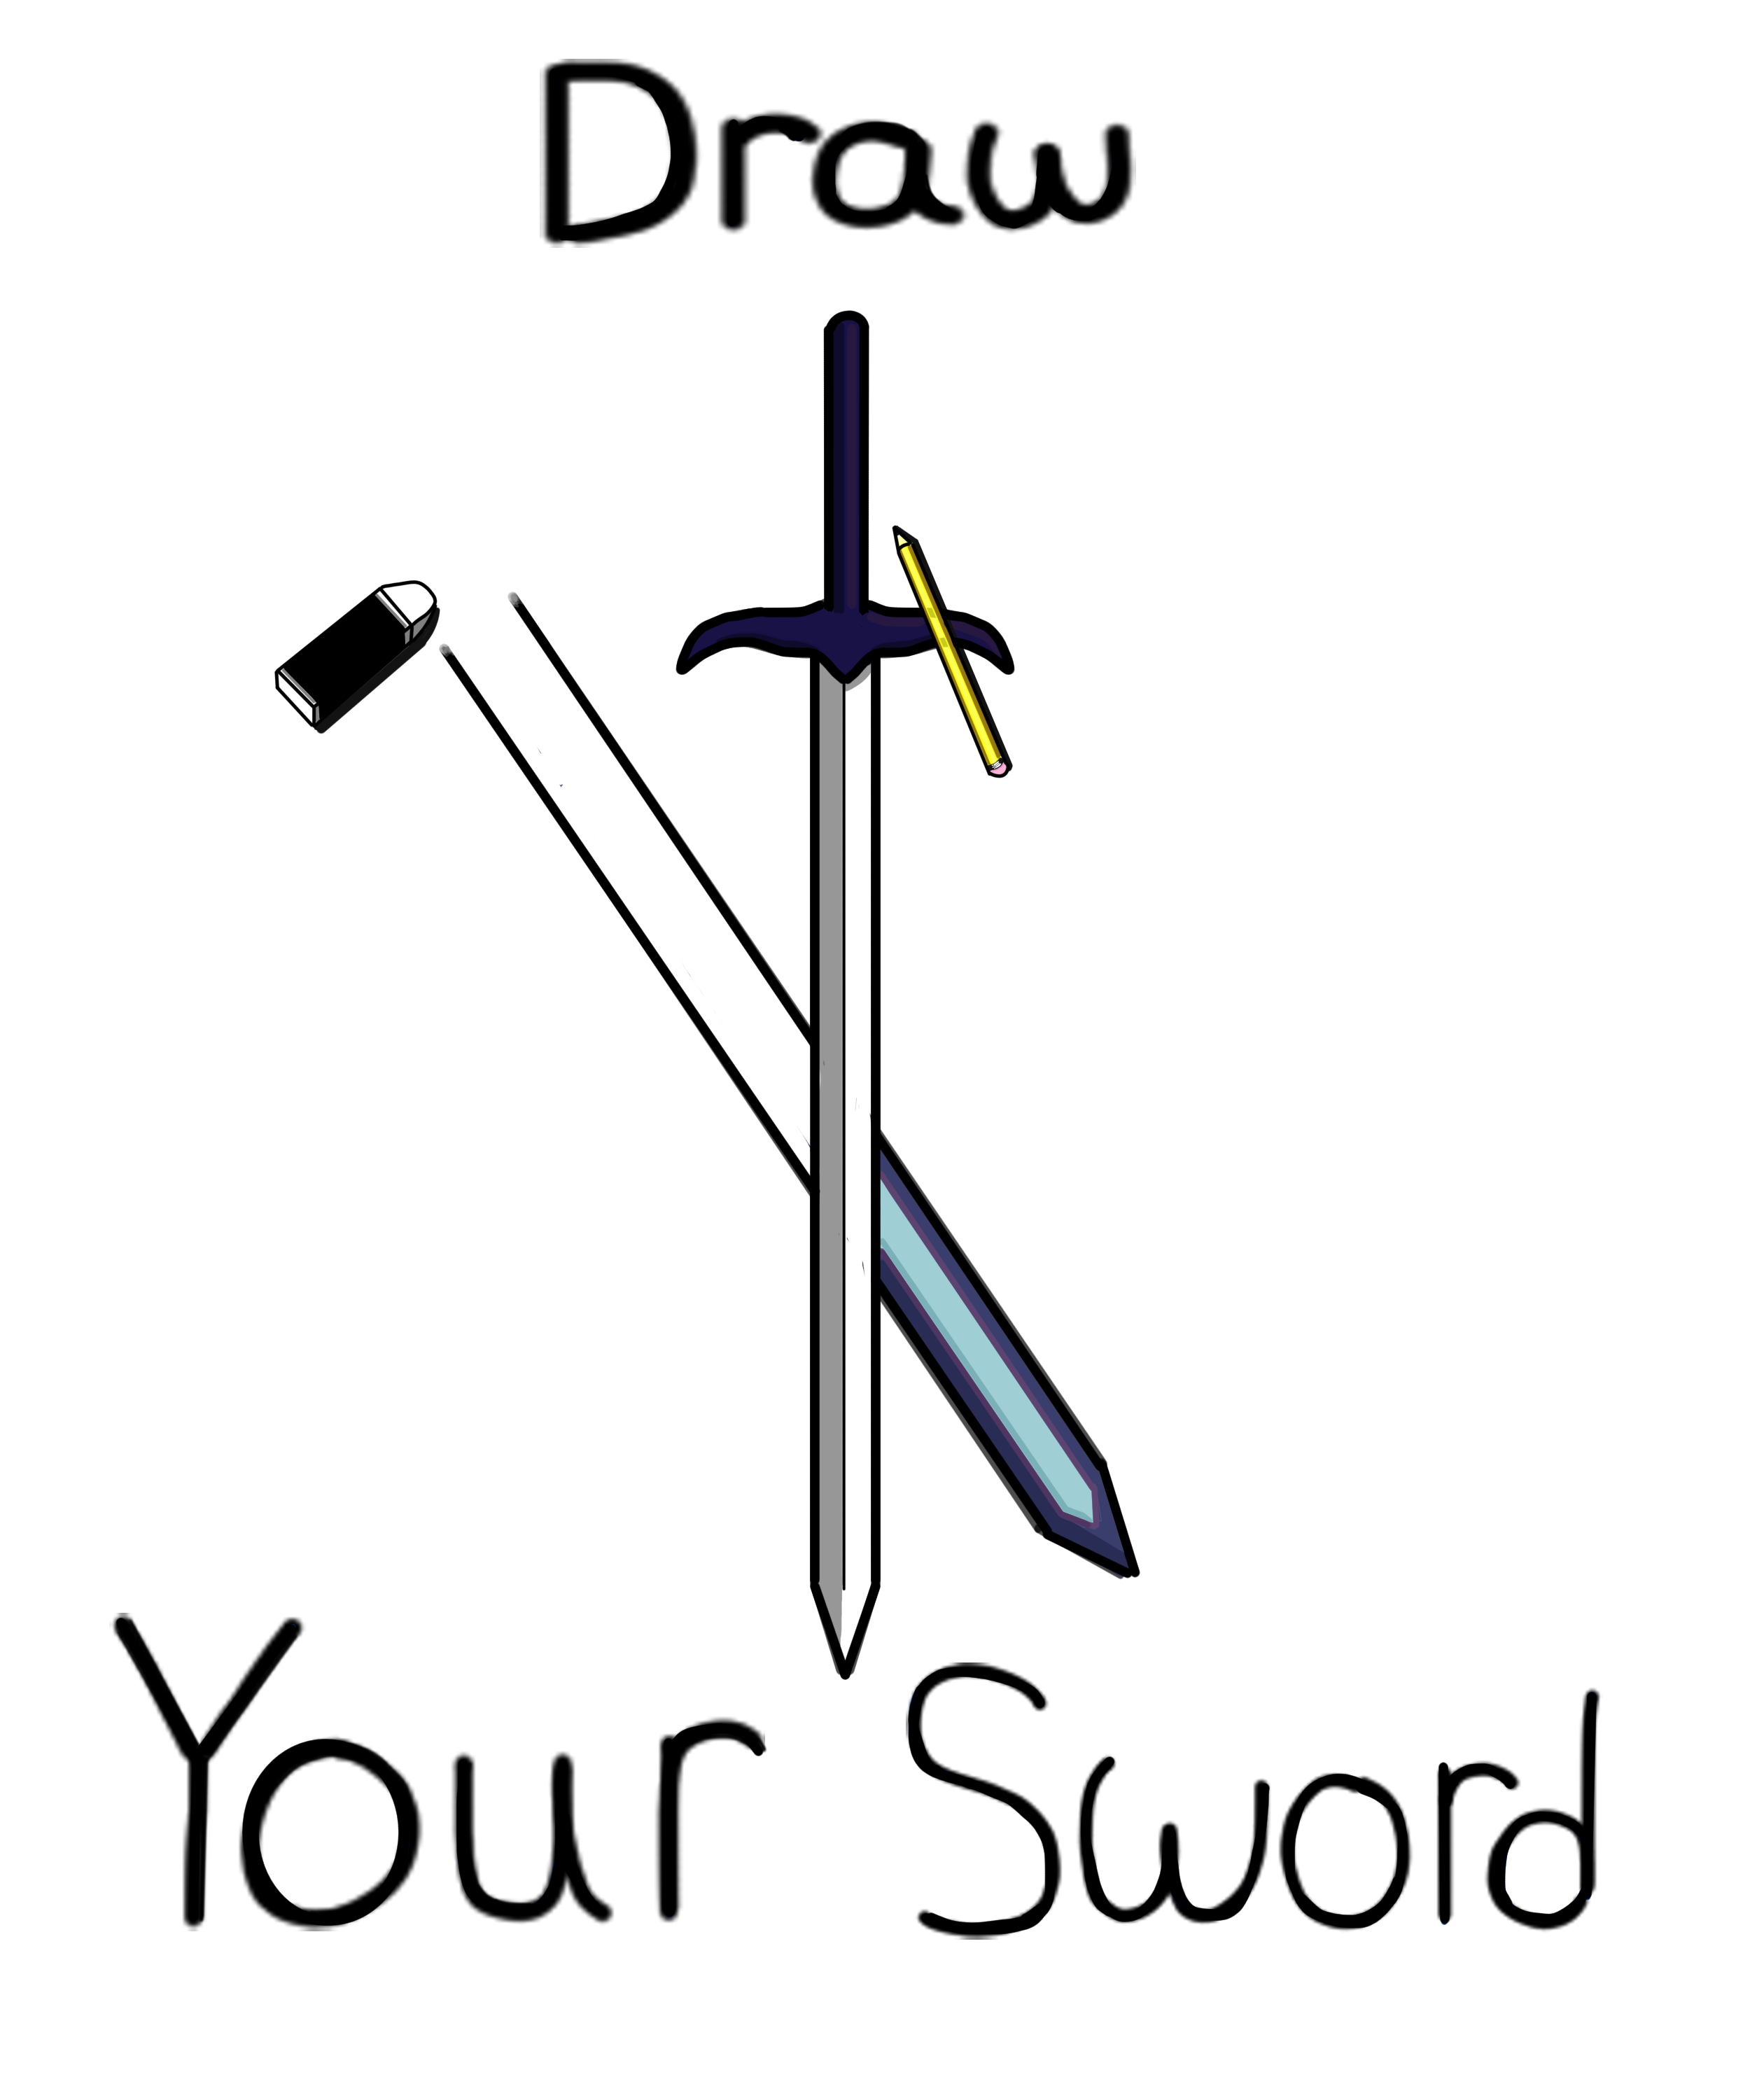 Draw Your Sword by RaveFlight on Newgrounds